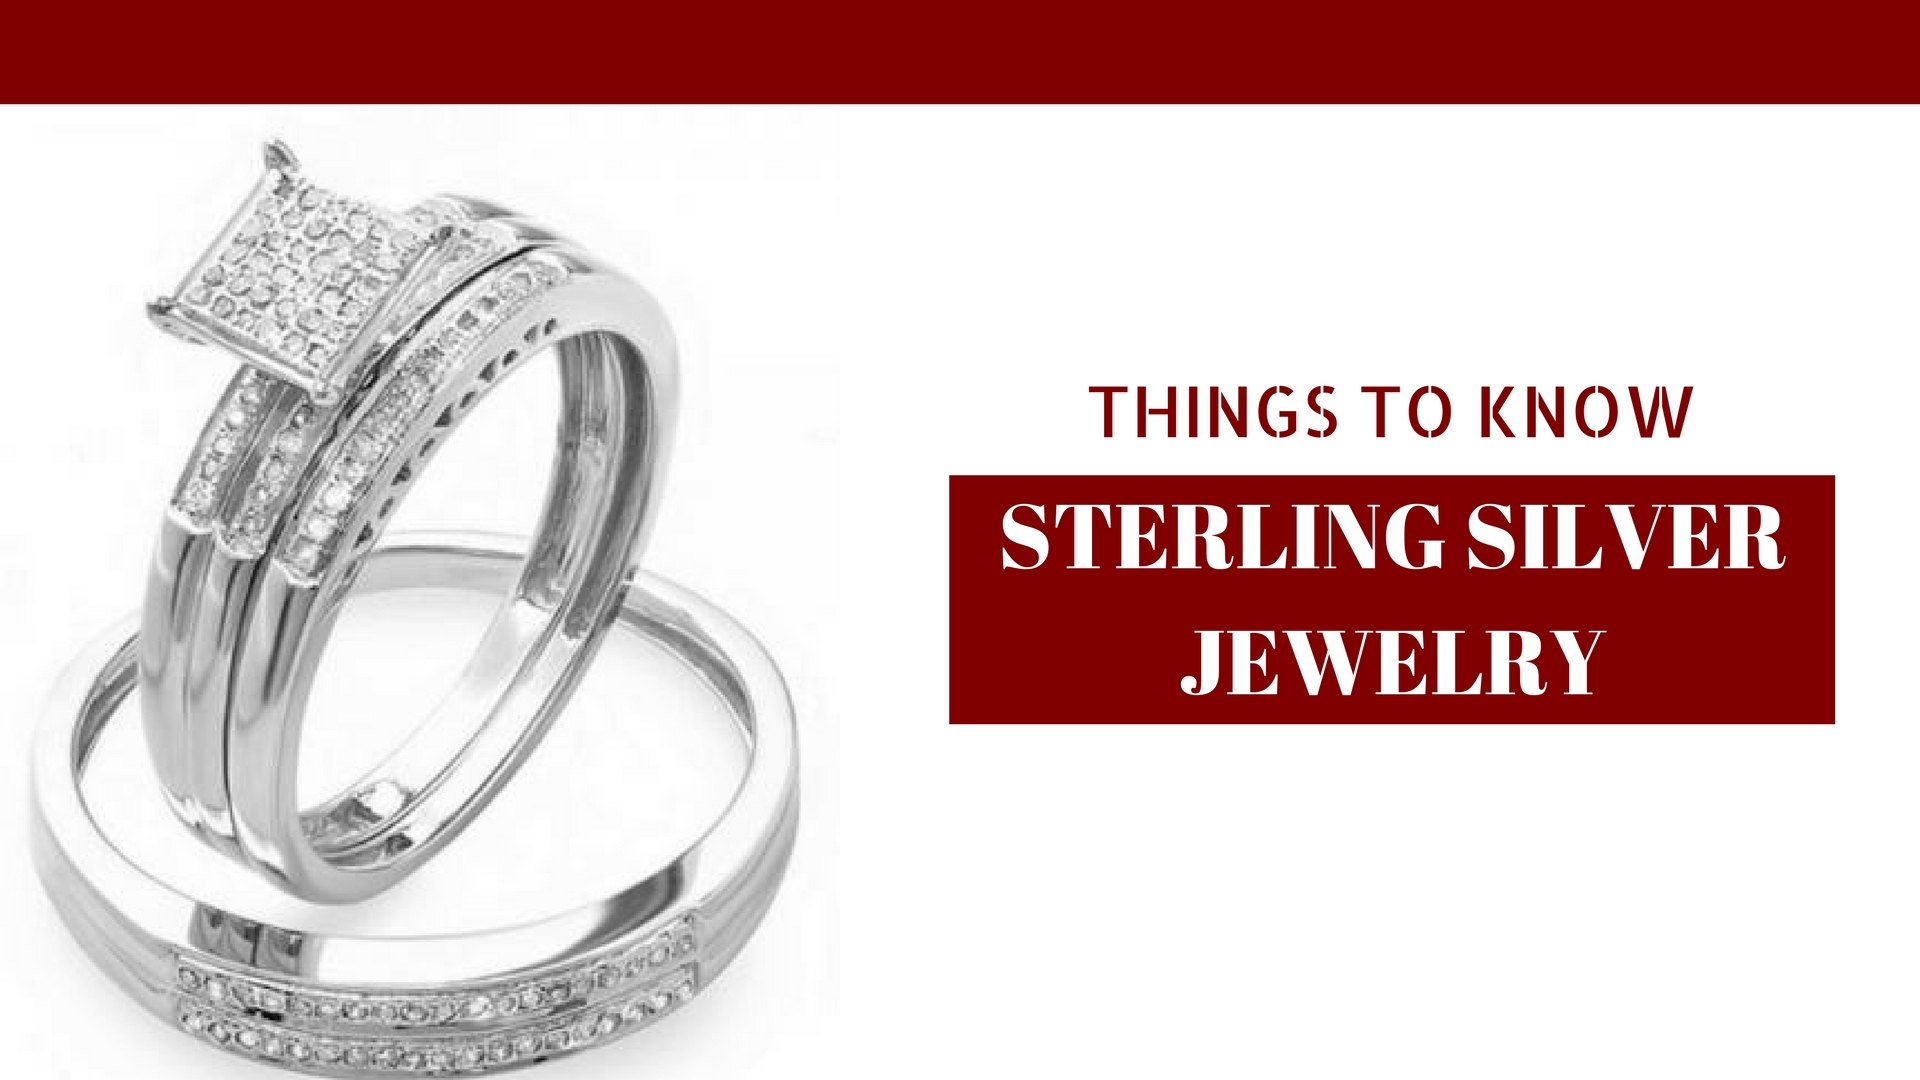 Things To Know About Sterling Silver Jewelry - Dazzling Rock